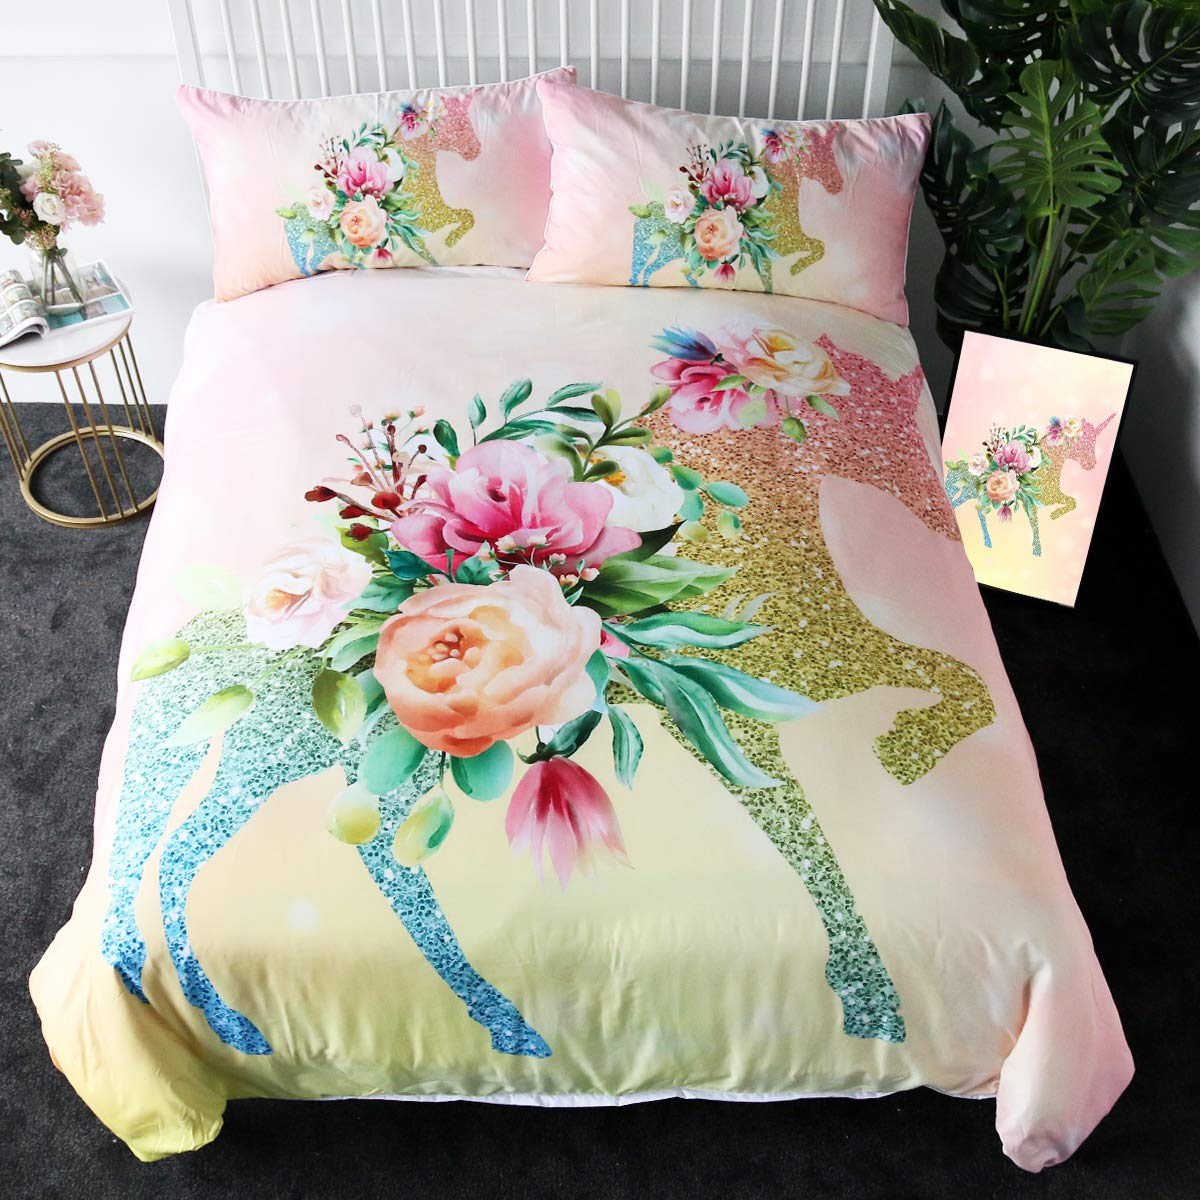 Sleepwish Glitter Unicorn Bedding Girl Trendy Pink Rose Duvet Cover Twin 3 Pieces Kids Magical Horse Pretty Bed Sets